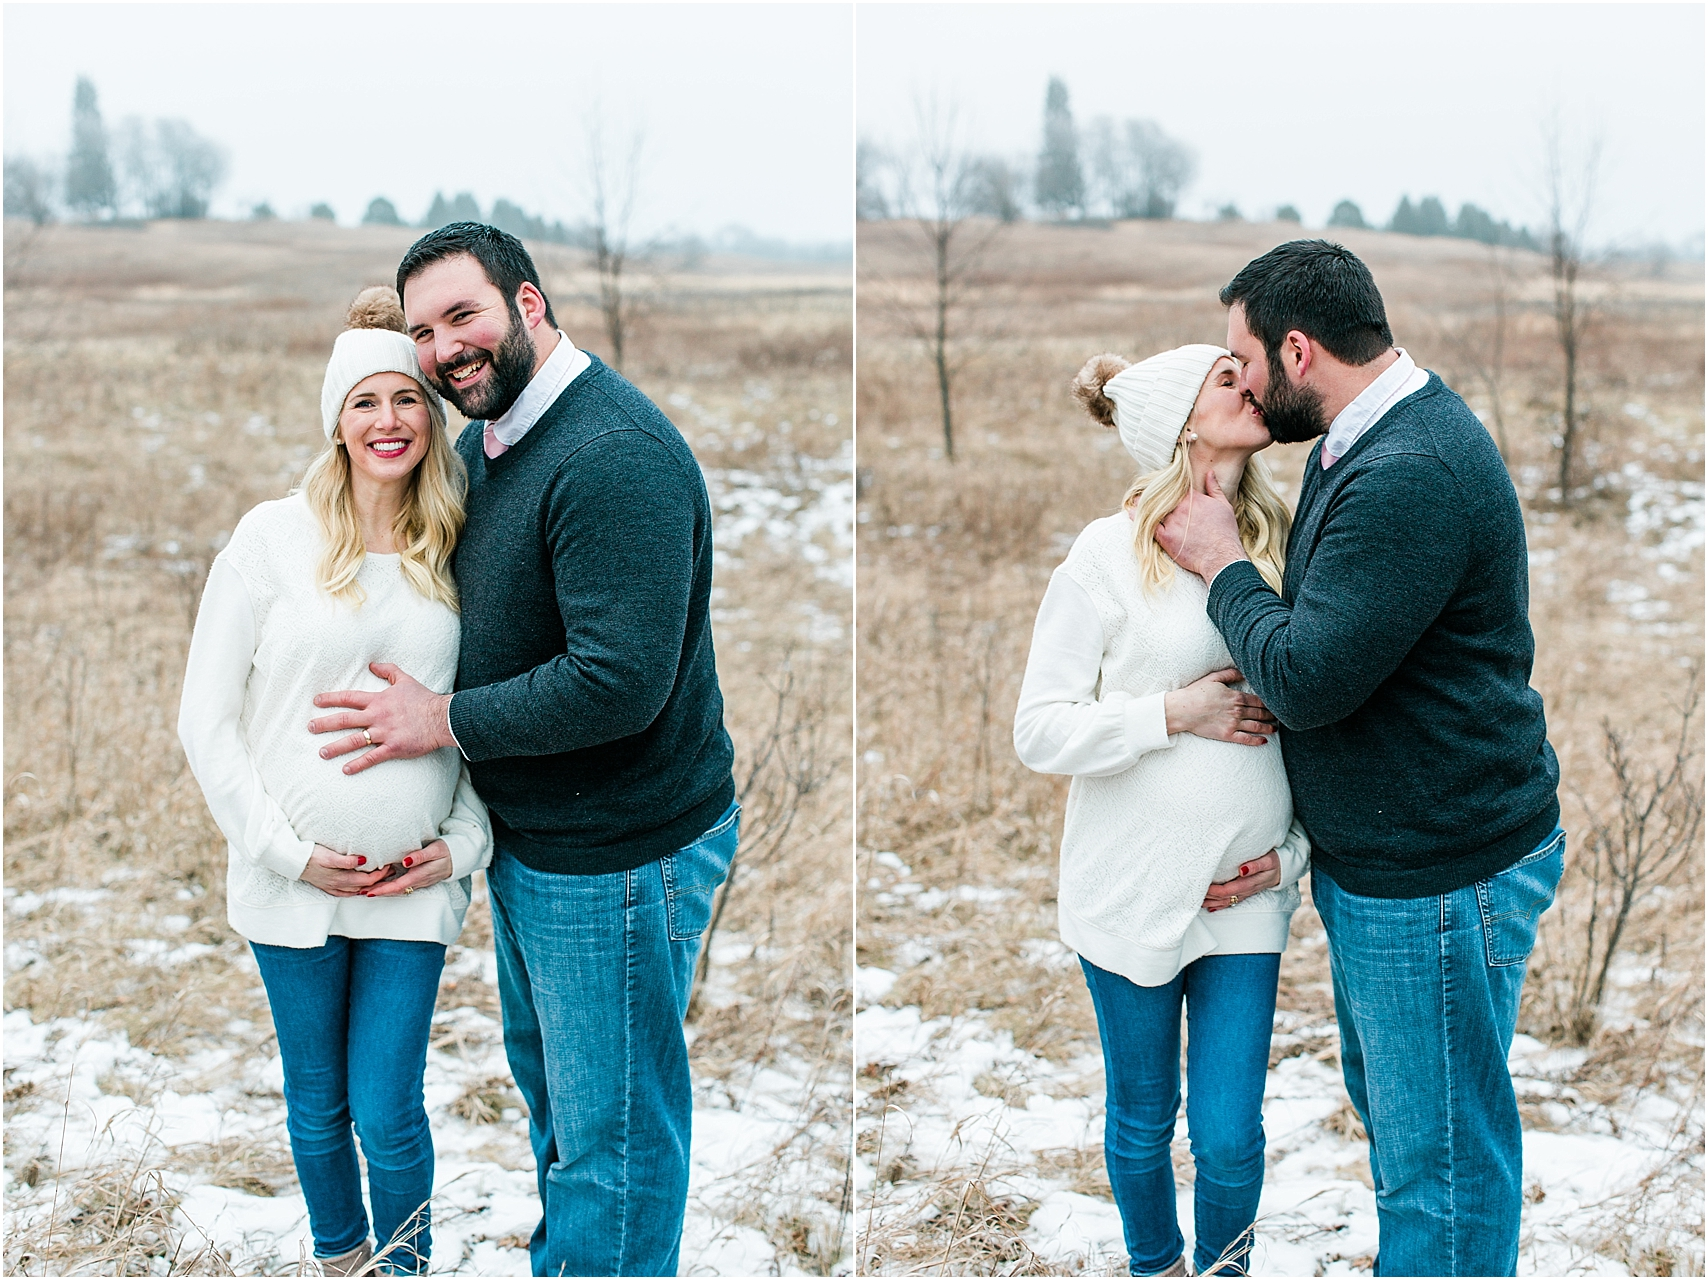 Minnesota winter maternity session Lake Ann Park Chanhassen photographed by Mallory Kiesow, Minnesota maternity photographer_013.jpg